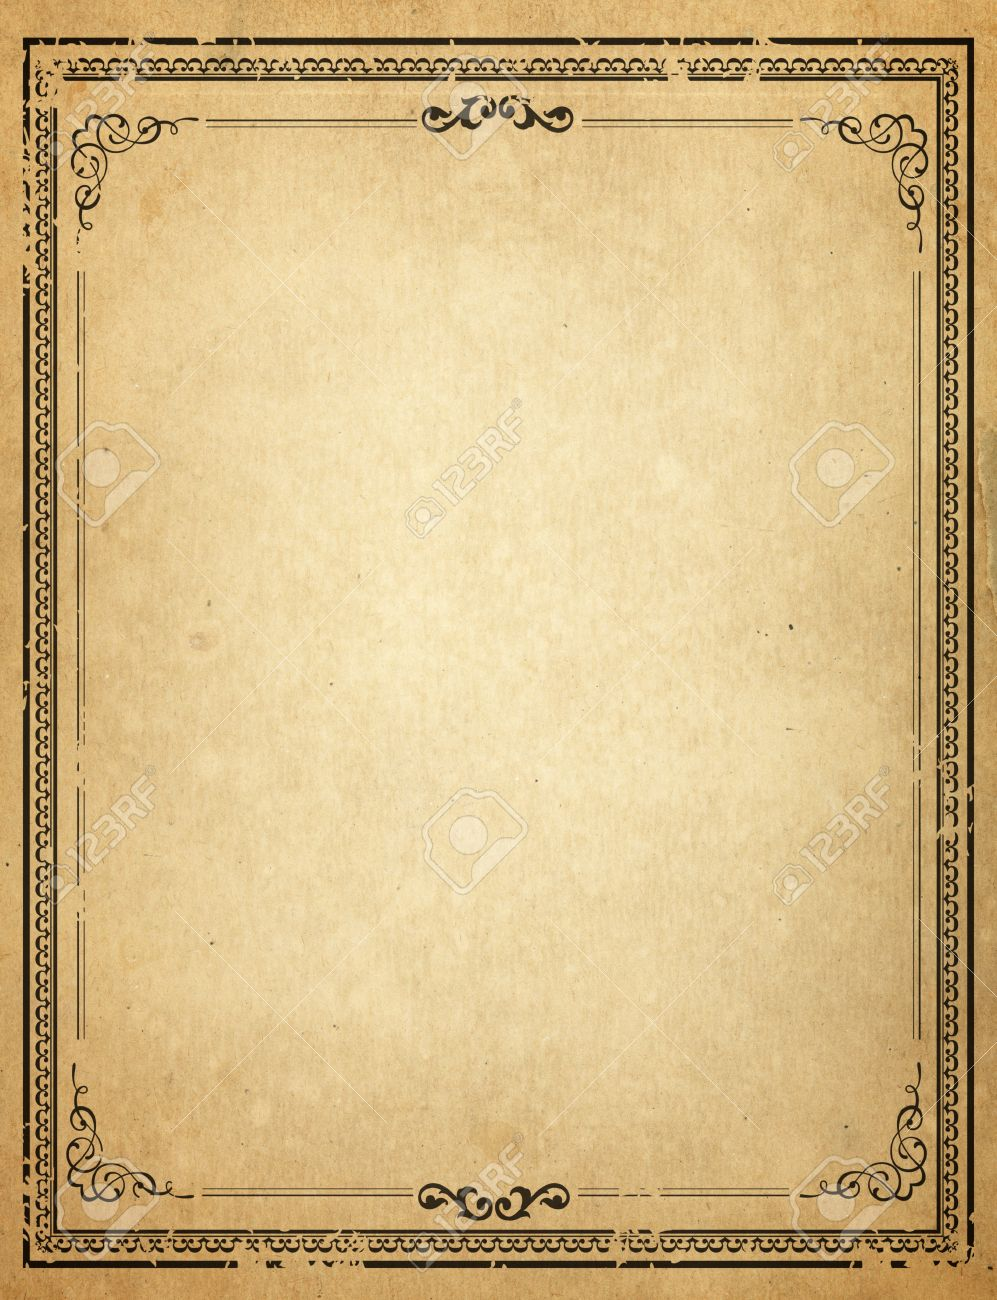 Old Paper With Patterned Vintage Frame - Blank For Your Design Stock ...